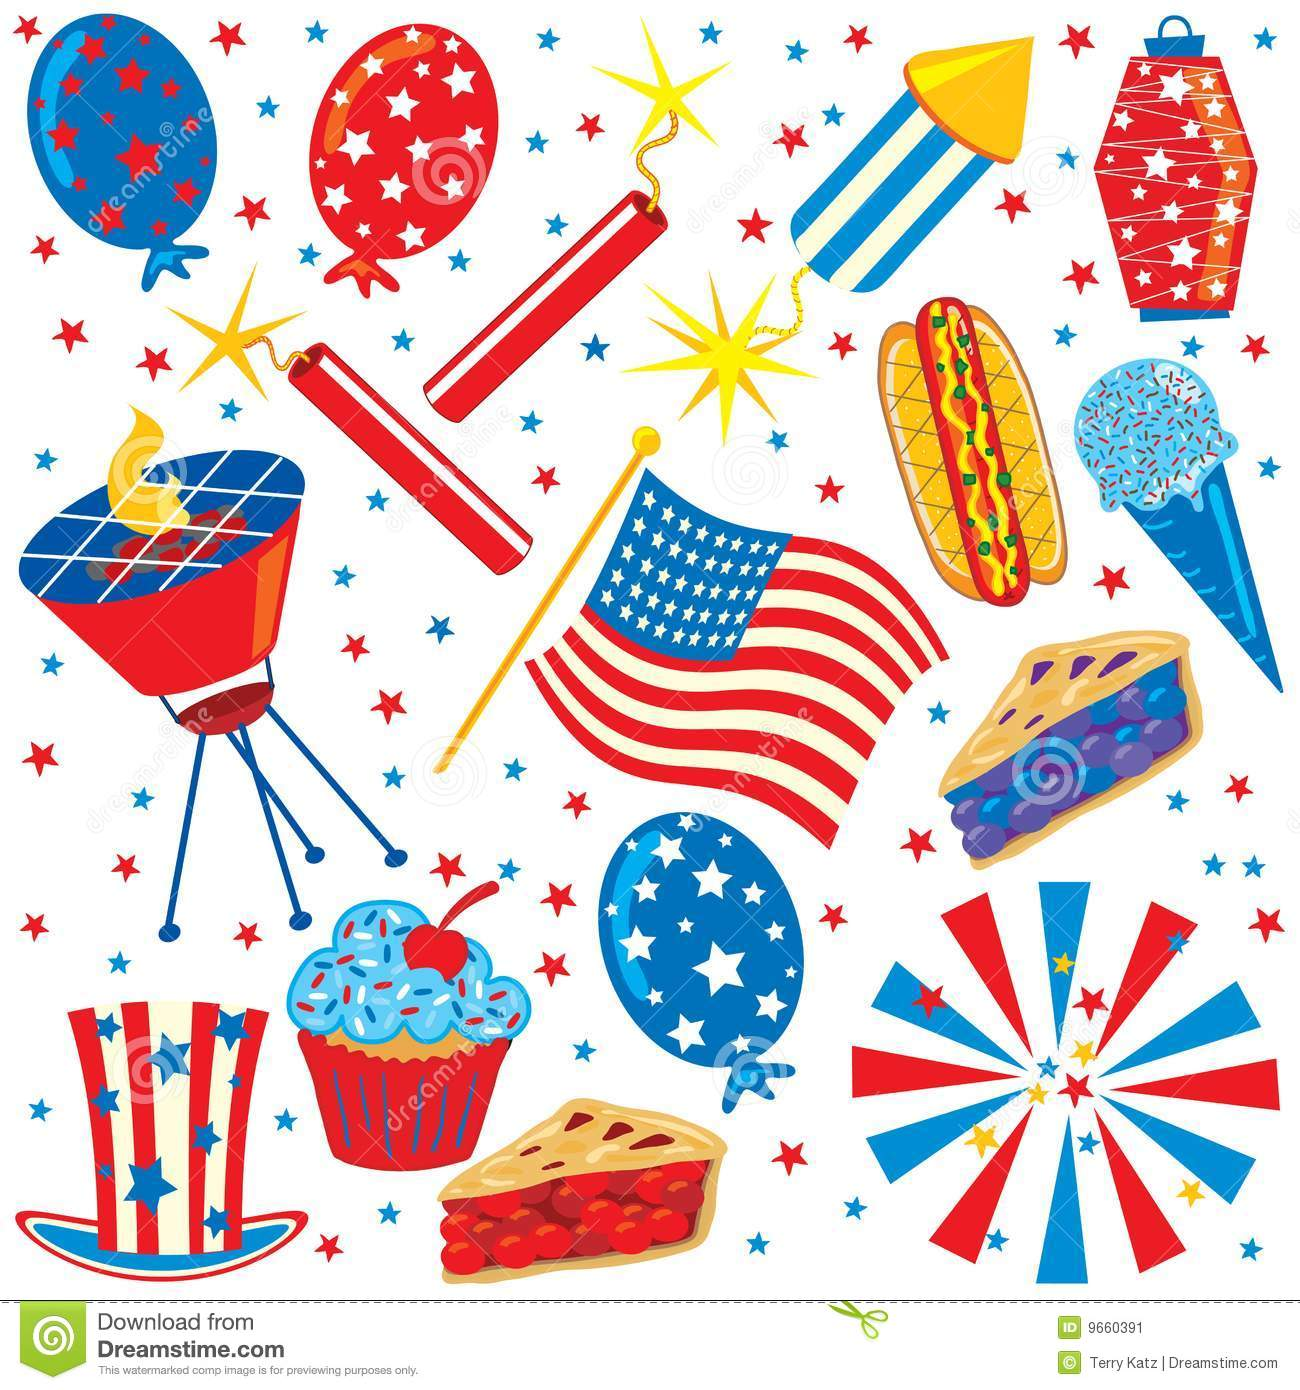 4th Of July Clip Art Party Elements Stock Illustration - Image: 9660391